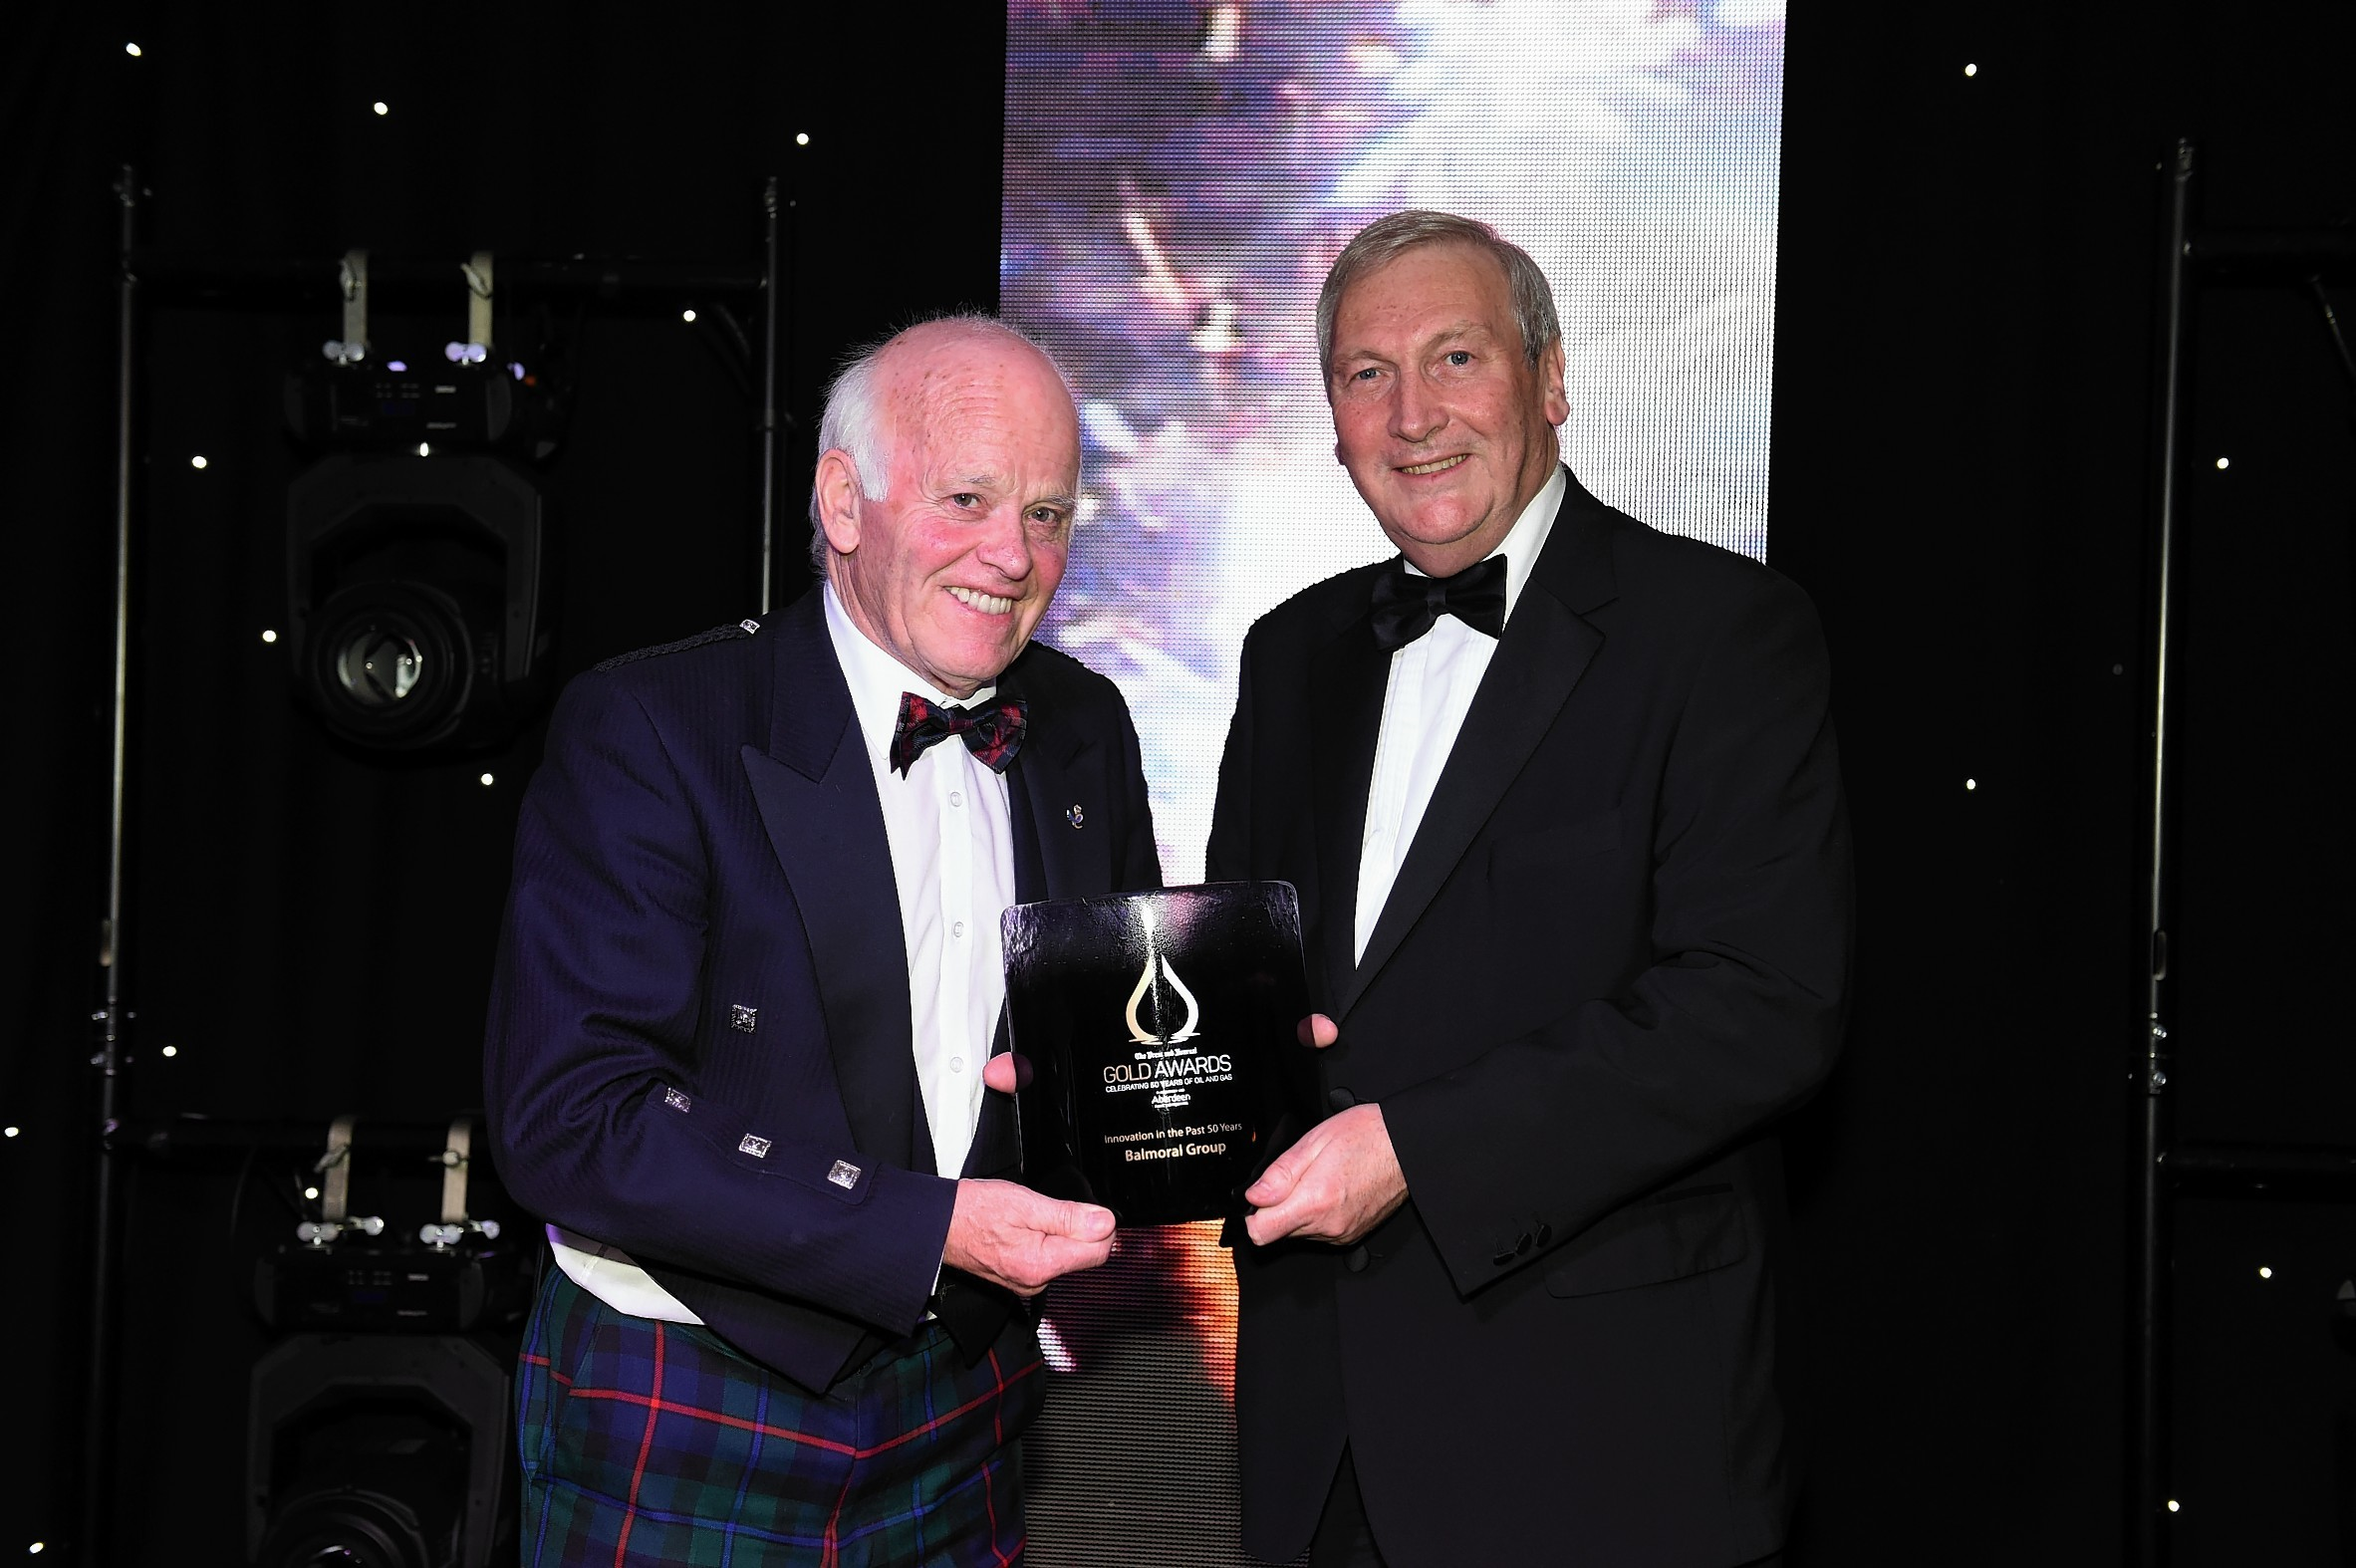 Jim Milne, chairman and managing director of Balmoral Group, being presented with an award by former Offshore Contractors Association chief executive Bill Murray at the 2015 Gold Awards.